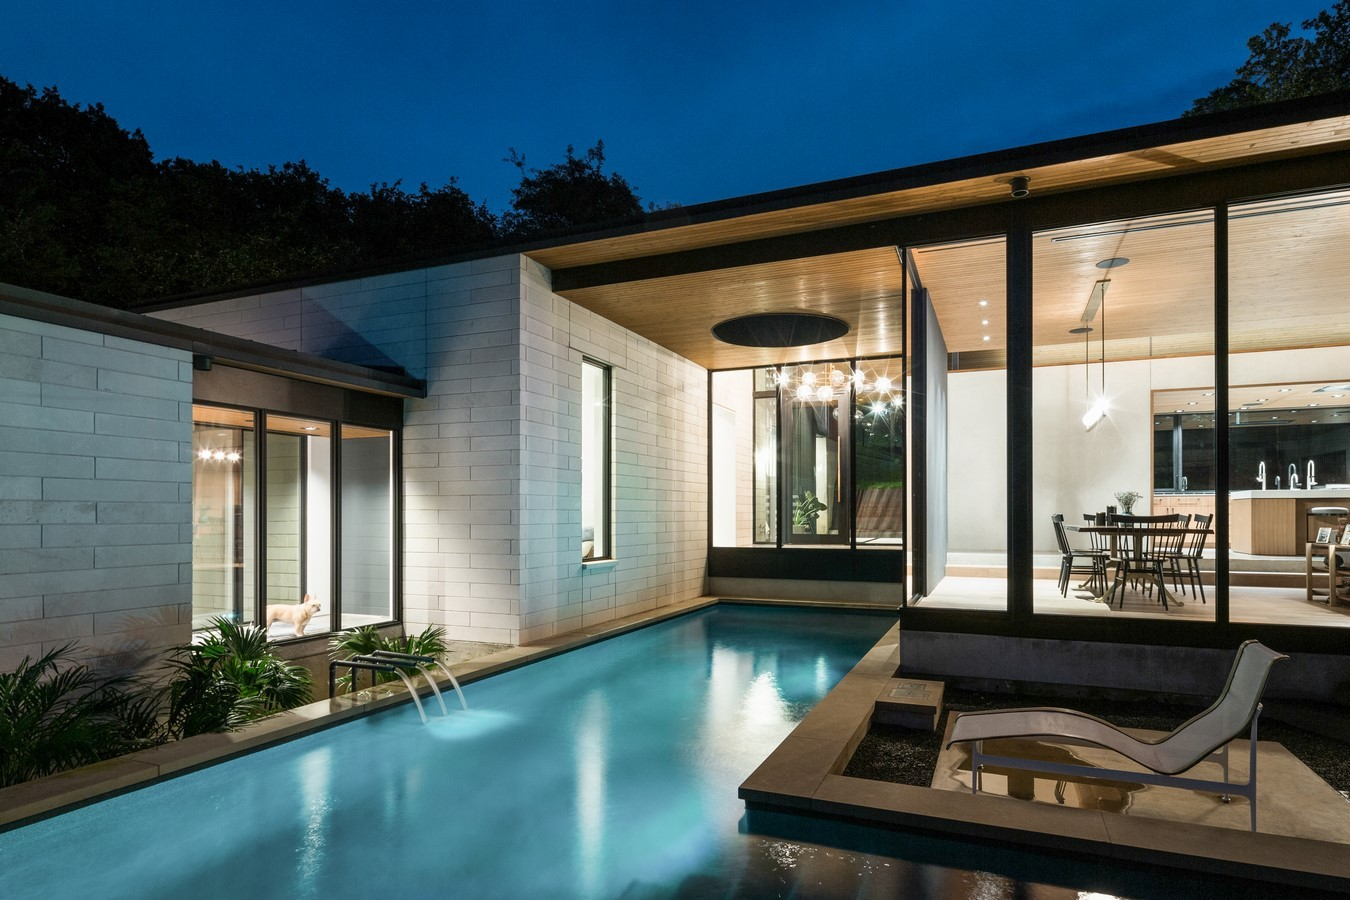 M1700 House By Ravel Architecture - Sheet2